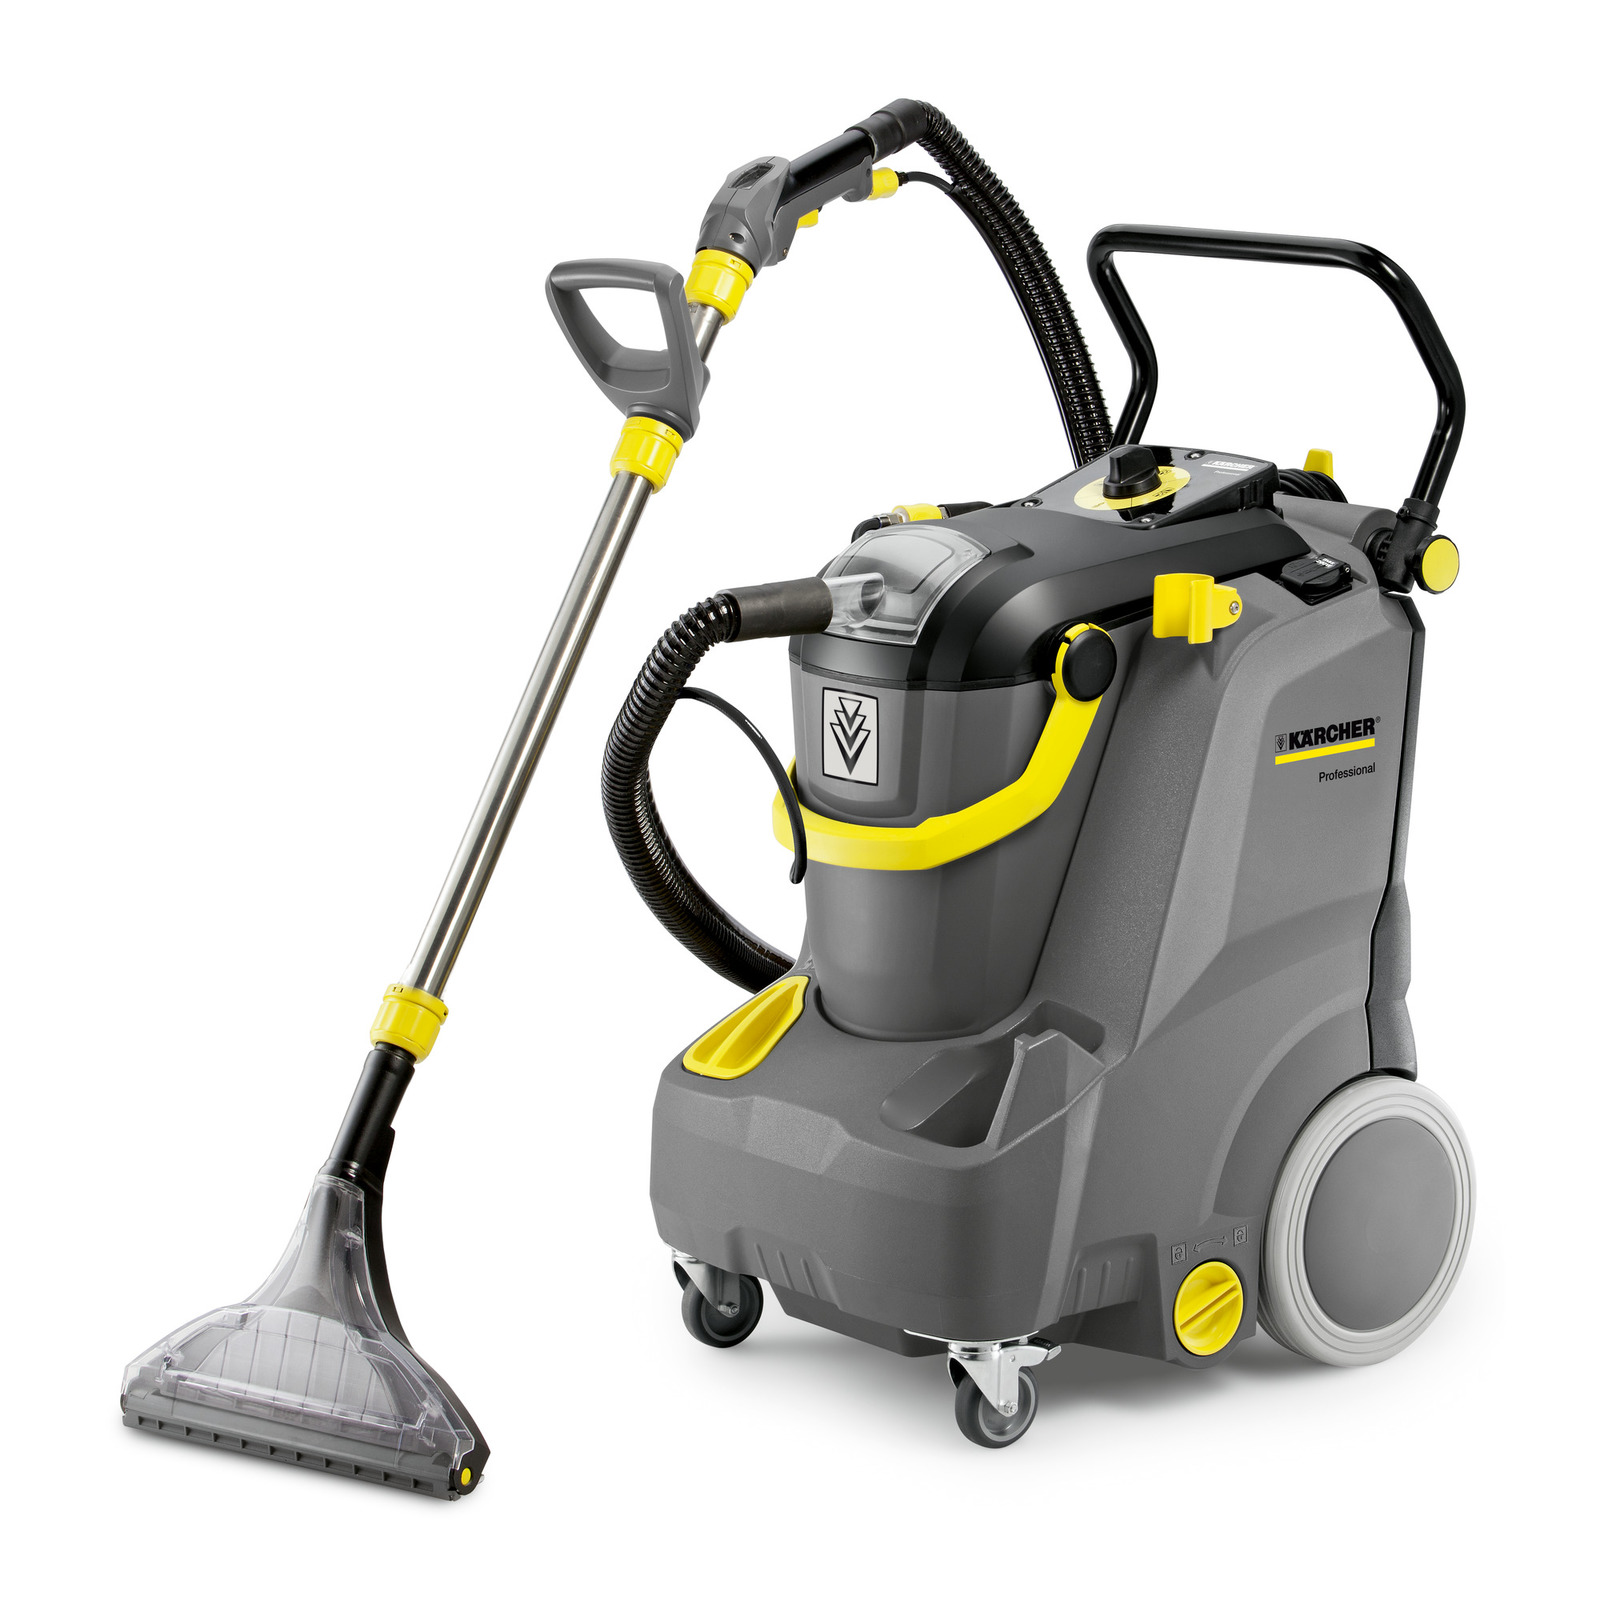 Carpet Cleaning Vacuum Puzzi 30 4 Kärcher International